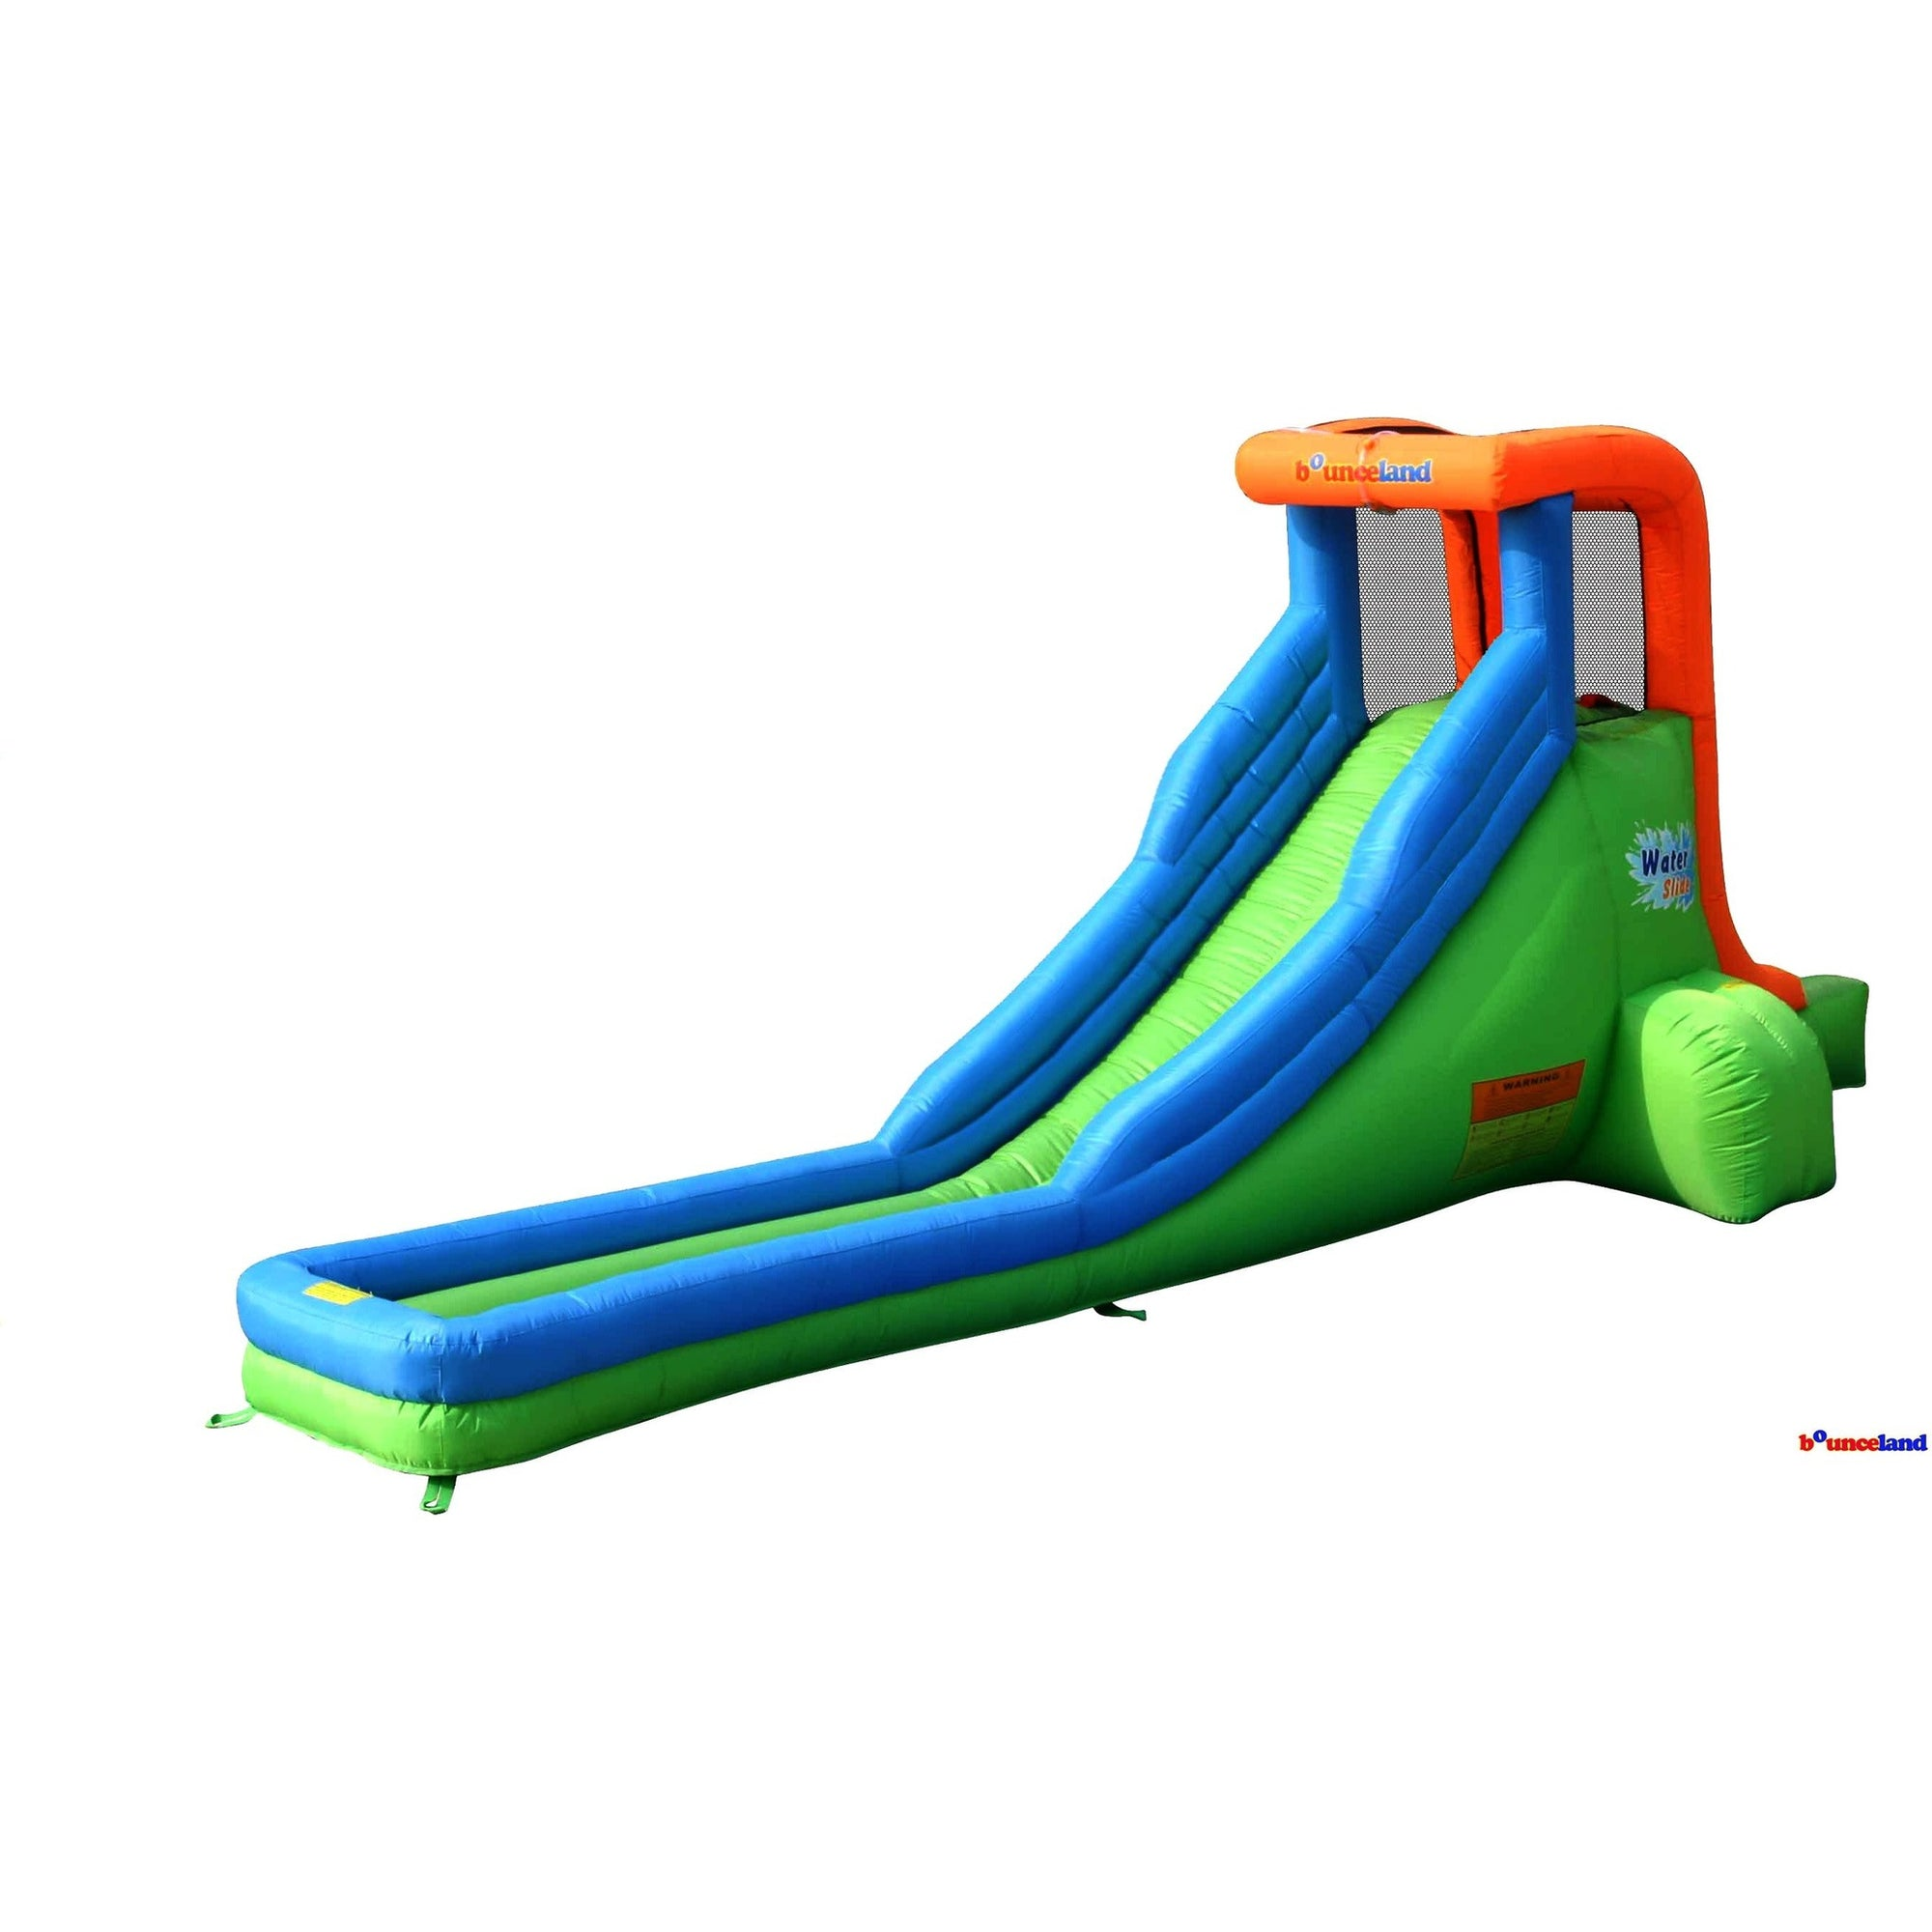 Bounceland Green Inflatable Single Water Slide   Bounce Houses For Sale   Bounce  House Planet